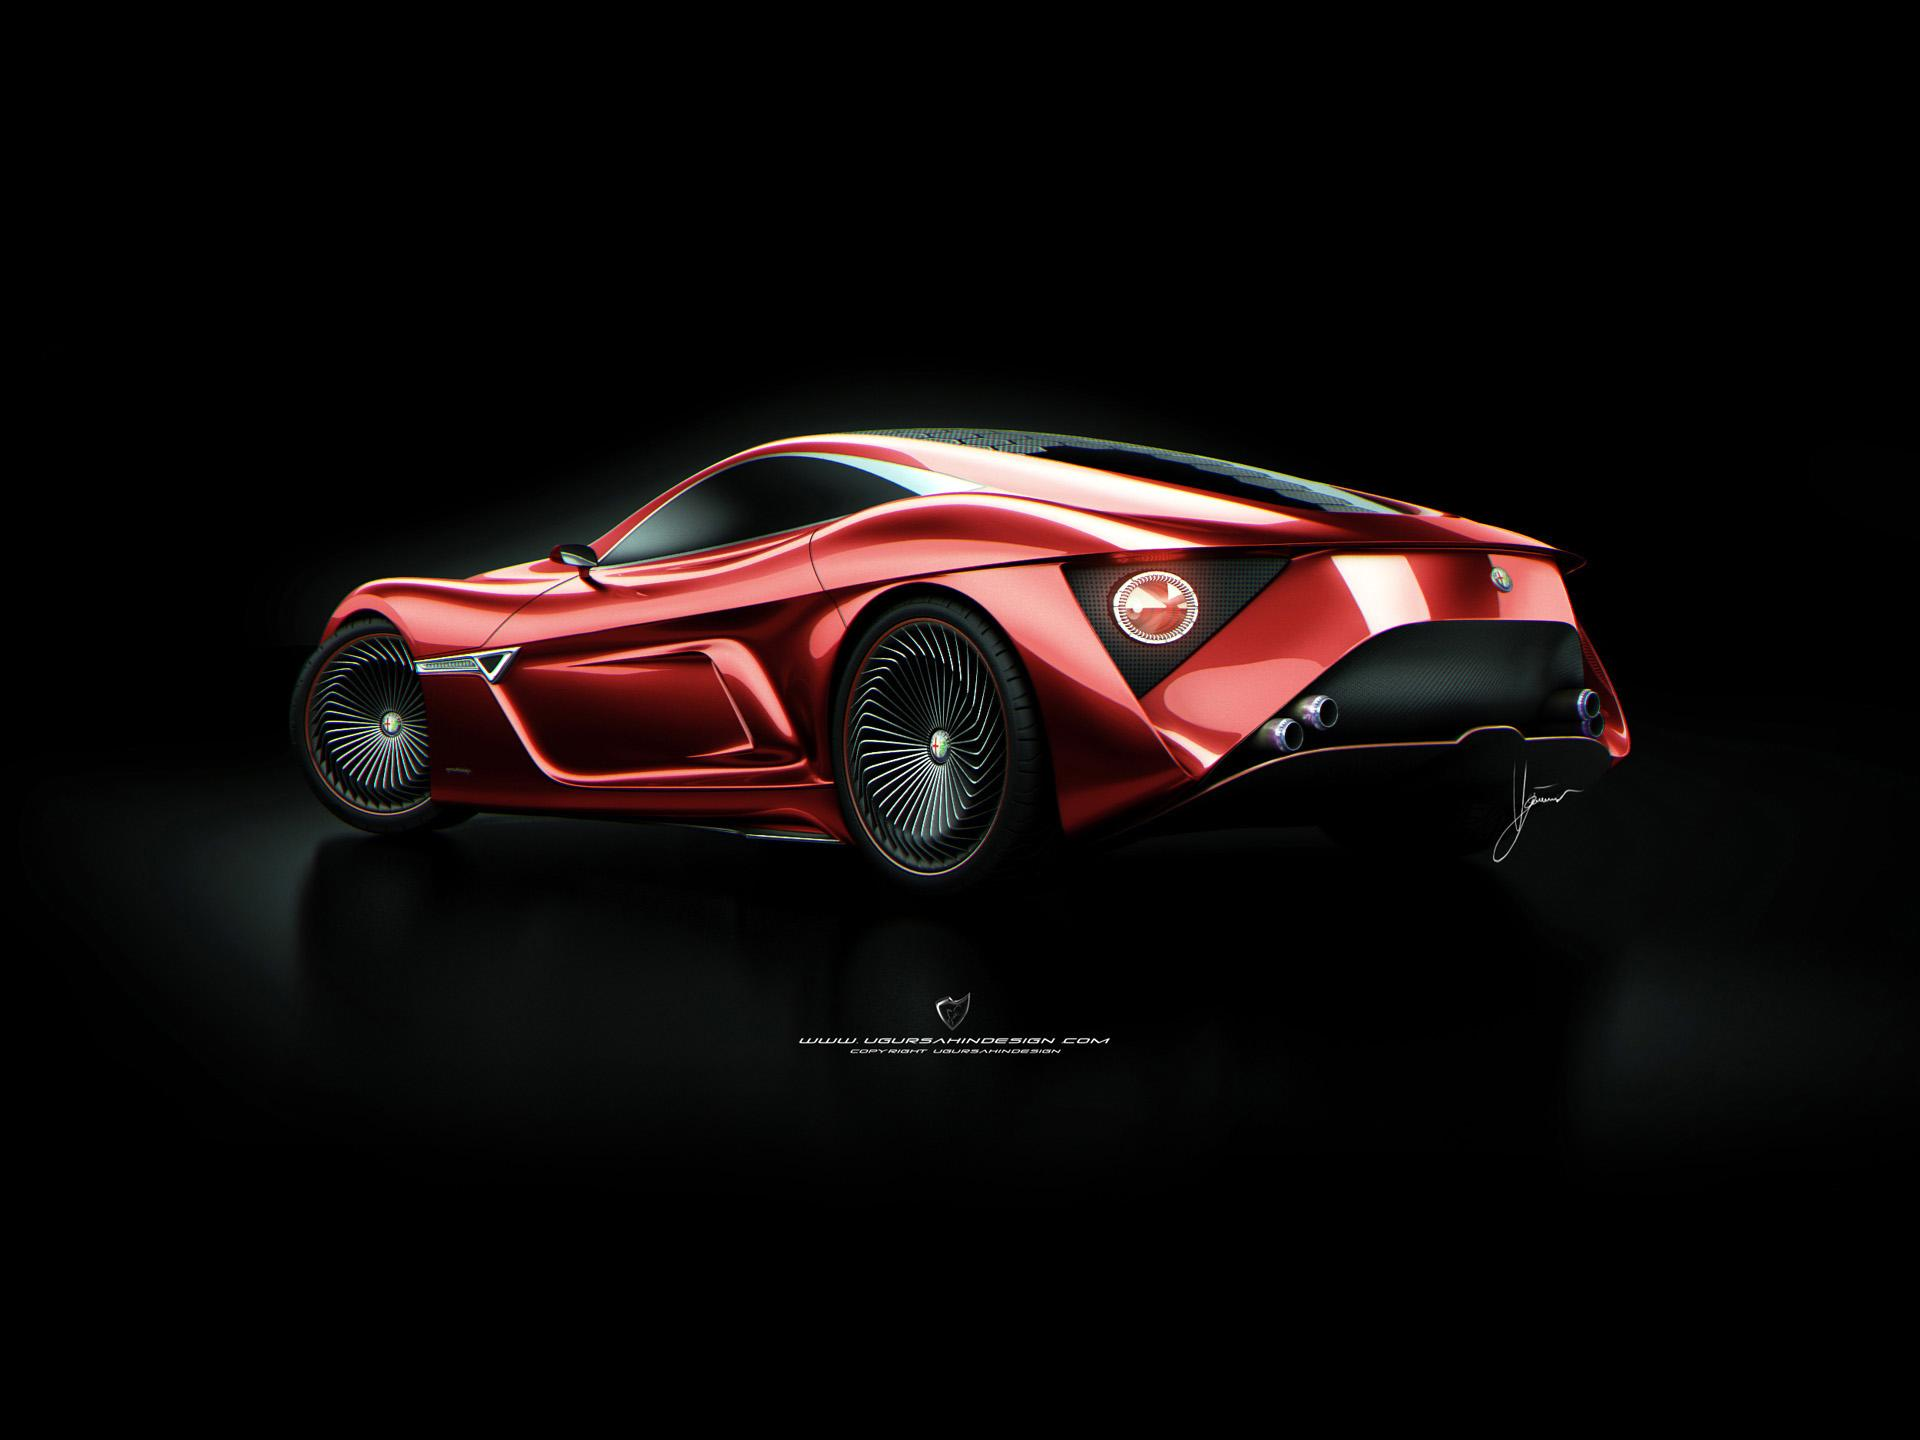 1920x1440 - Alfa Romeo 12C GTS Wallpapers 19